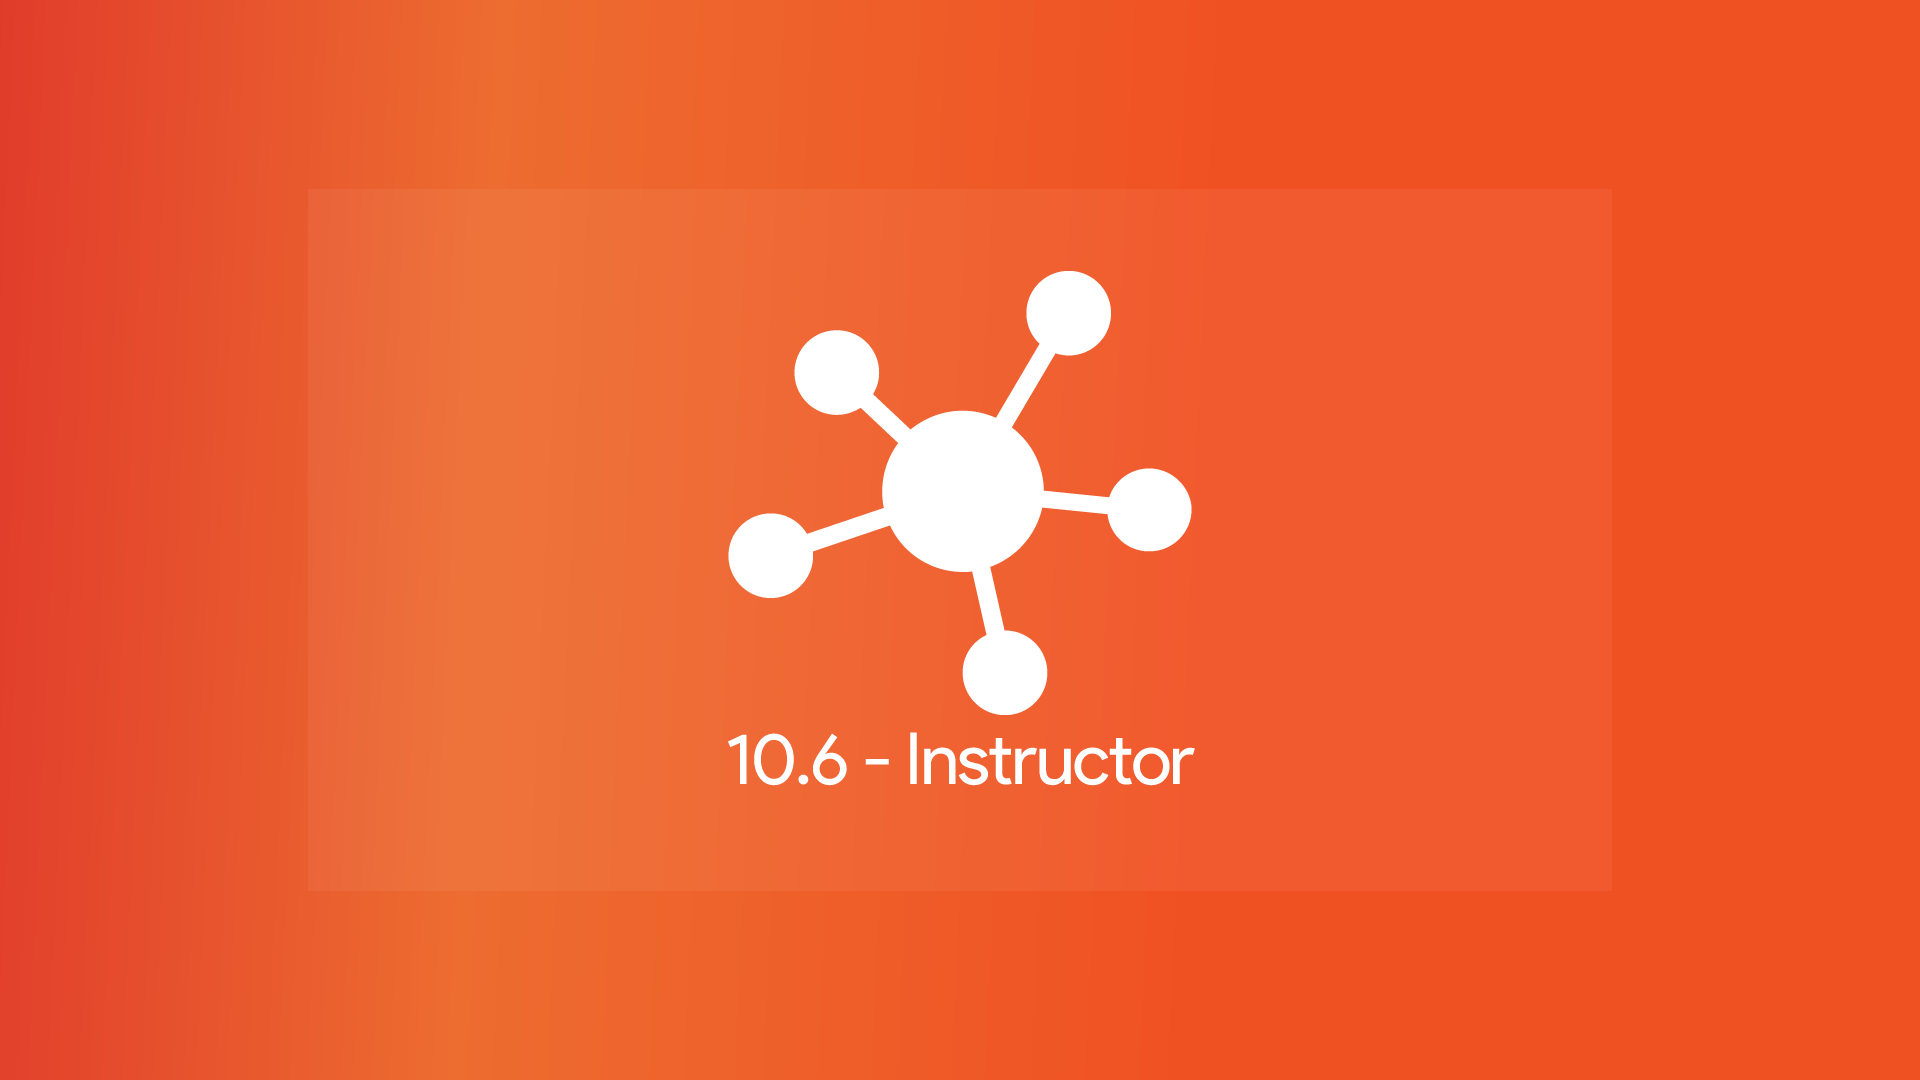 Desire2Learn (Brightspace) 10.6 - Instructor